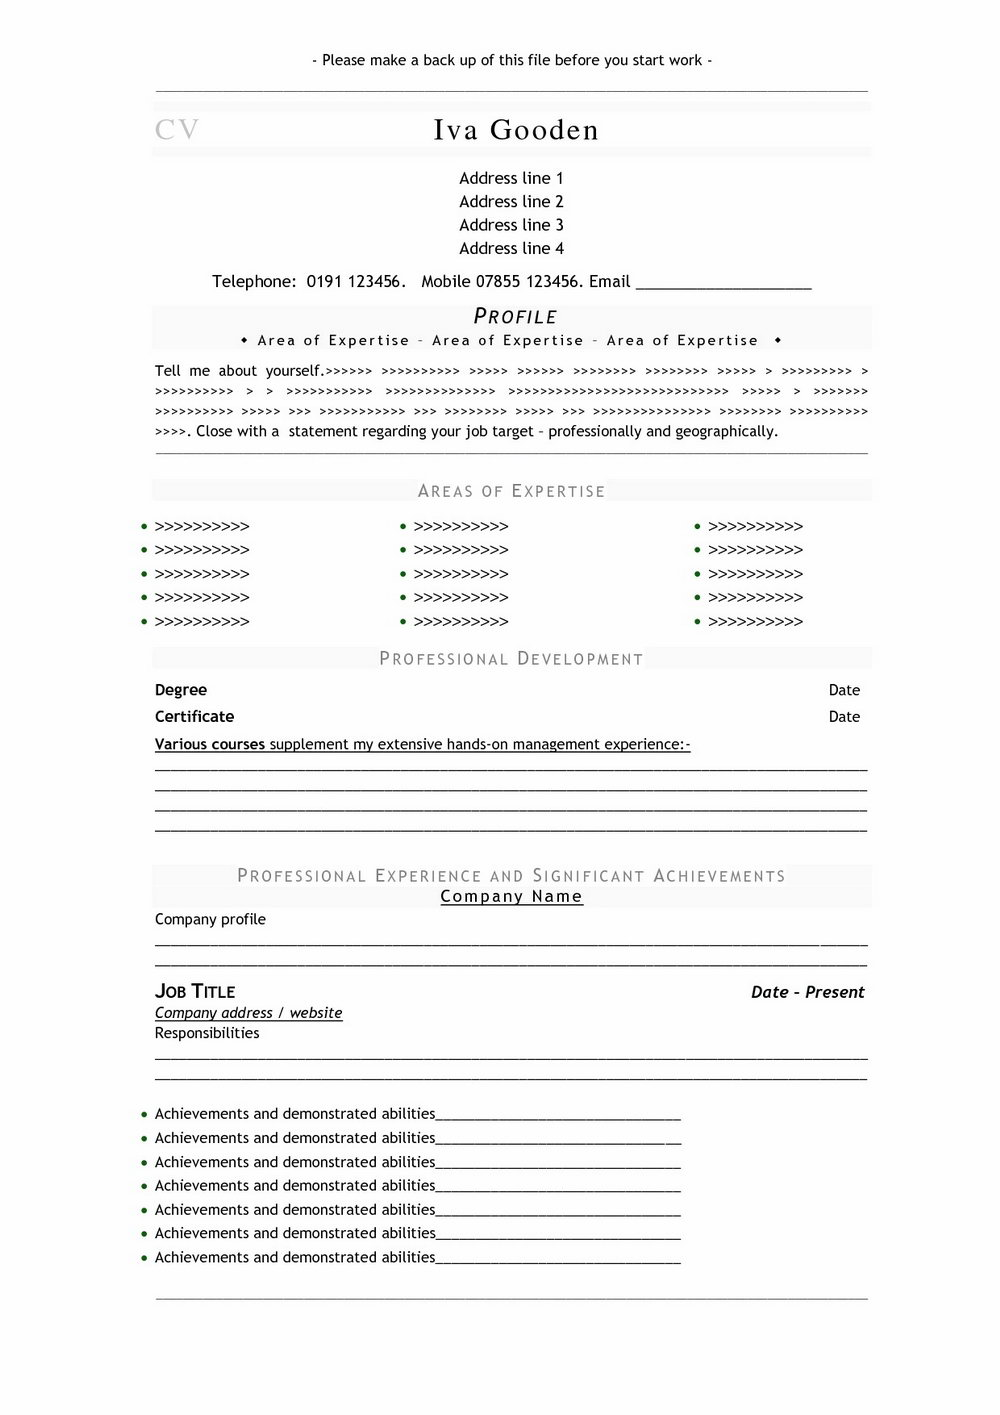 Printable Blank Resume Templates